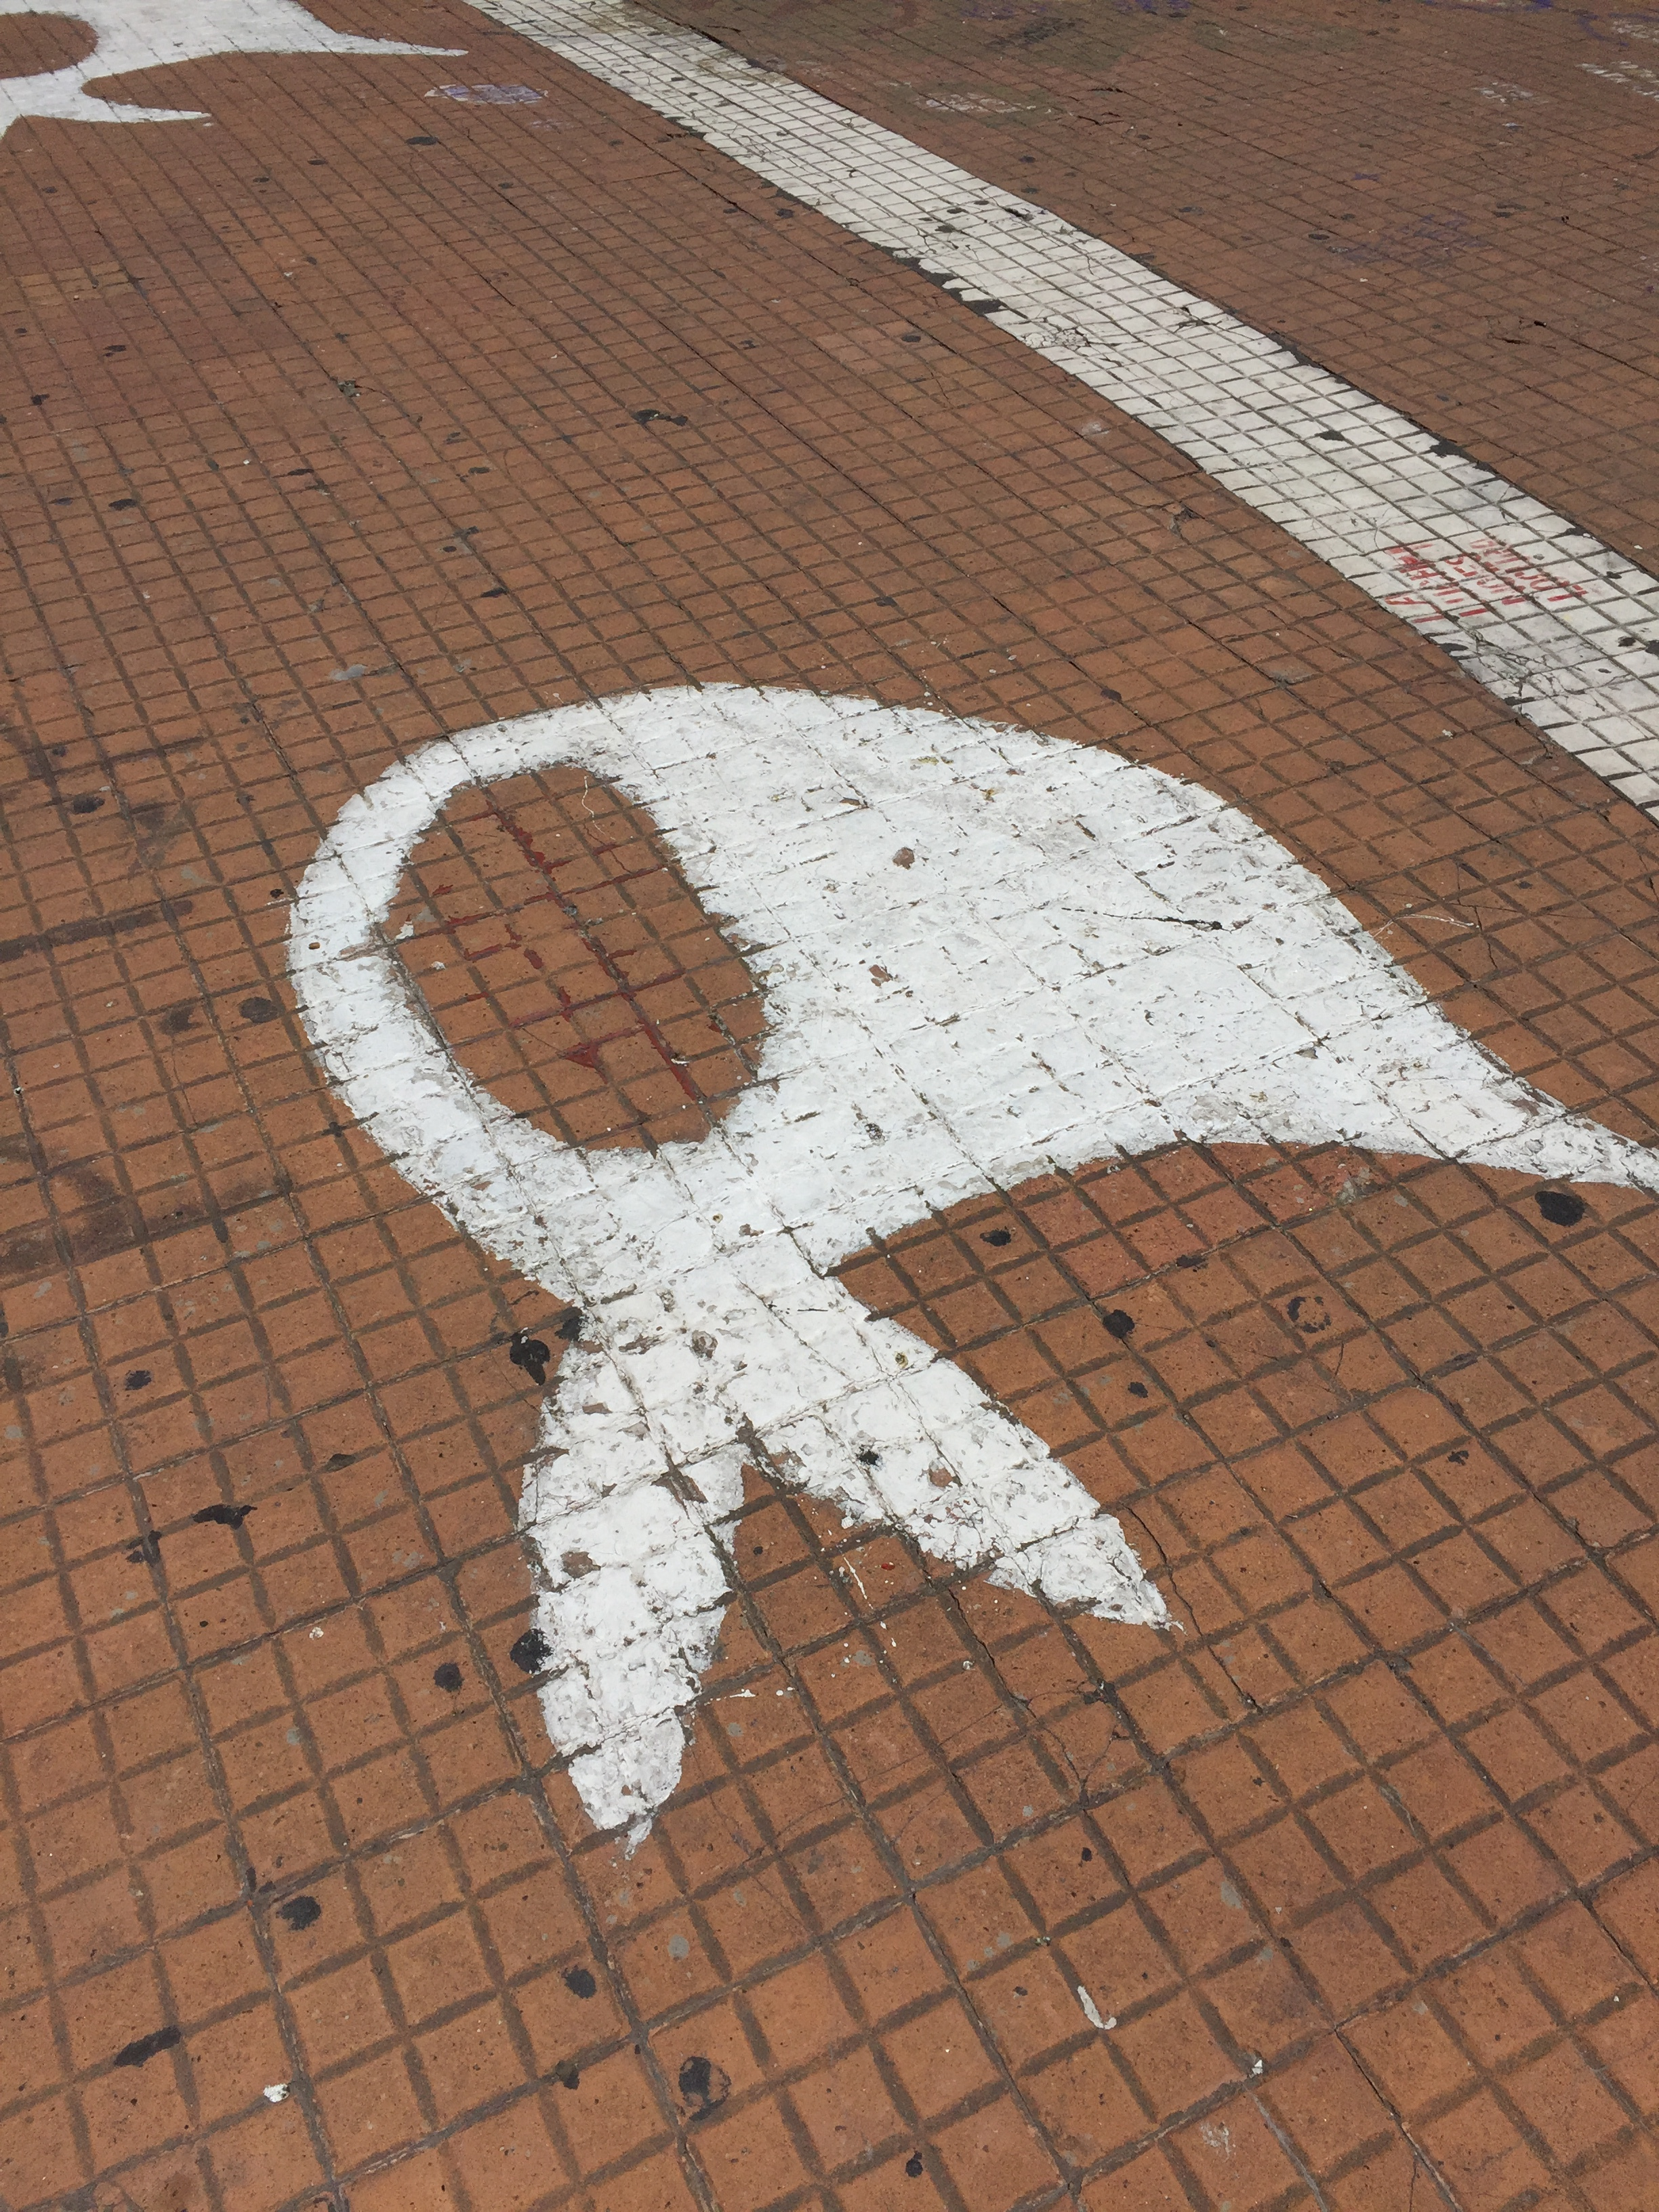 """The white kerchief, a symbol of justice for the thousands of missing citizens or """"Desaparecidos"""" still unaccounted for. The white kerchief symbol is found throughout public places in Argentina."""